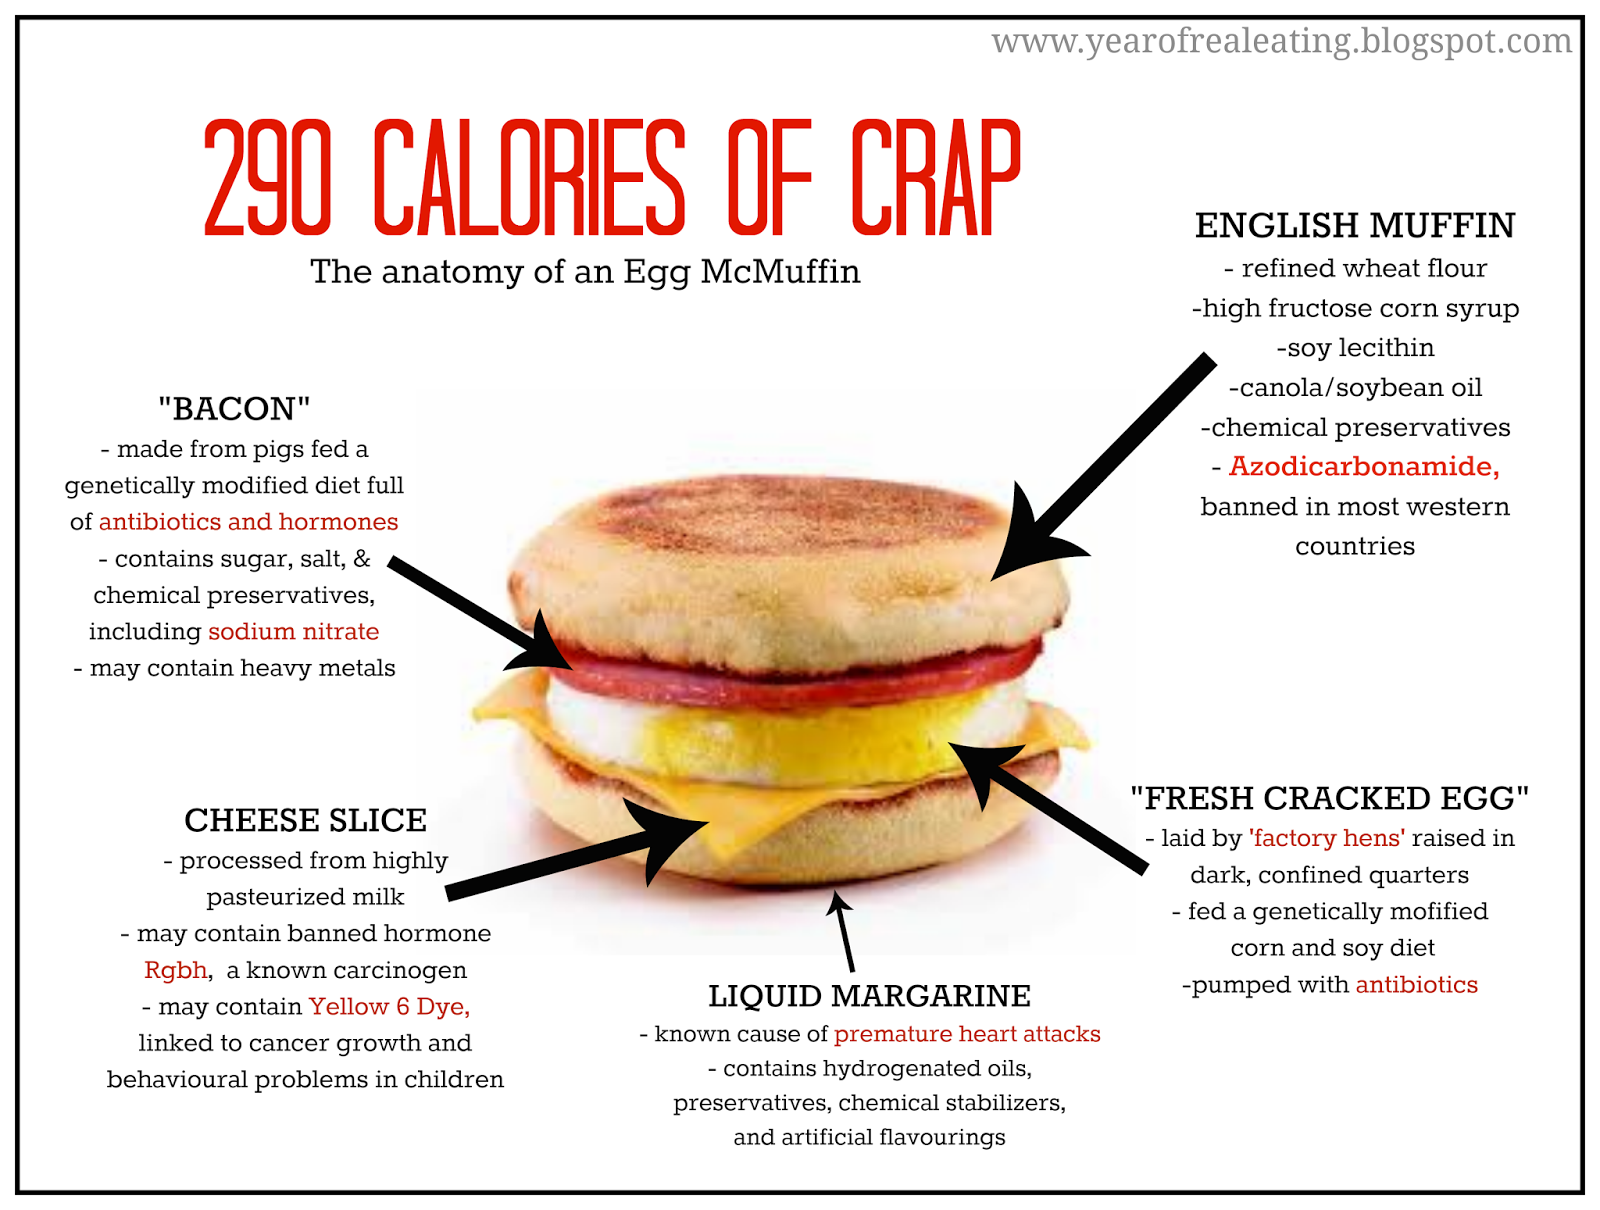 egg mcmuffin: just 290 calories (of crap) | a year of real eating